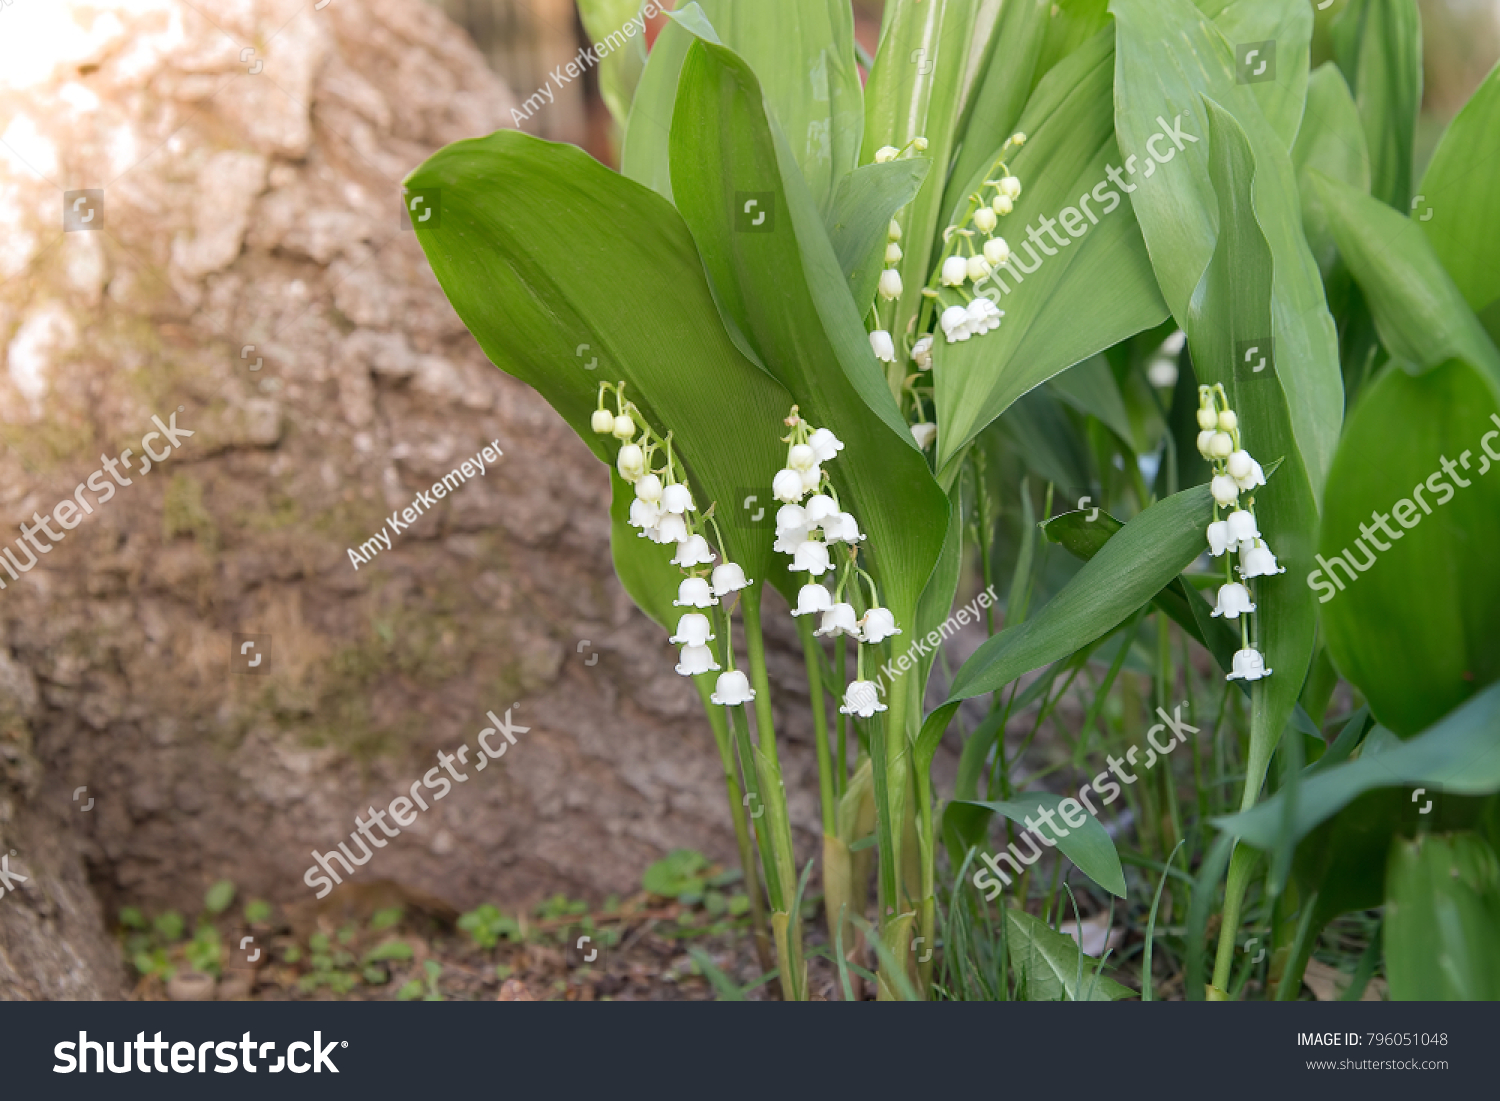 White Bell Shaped Flowers Hang Lily Stock Photo Edit Now 796051048